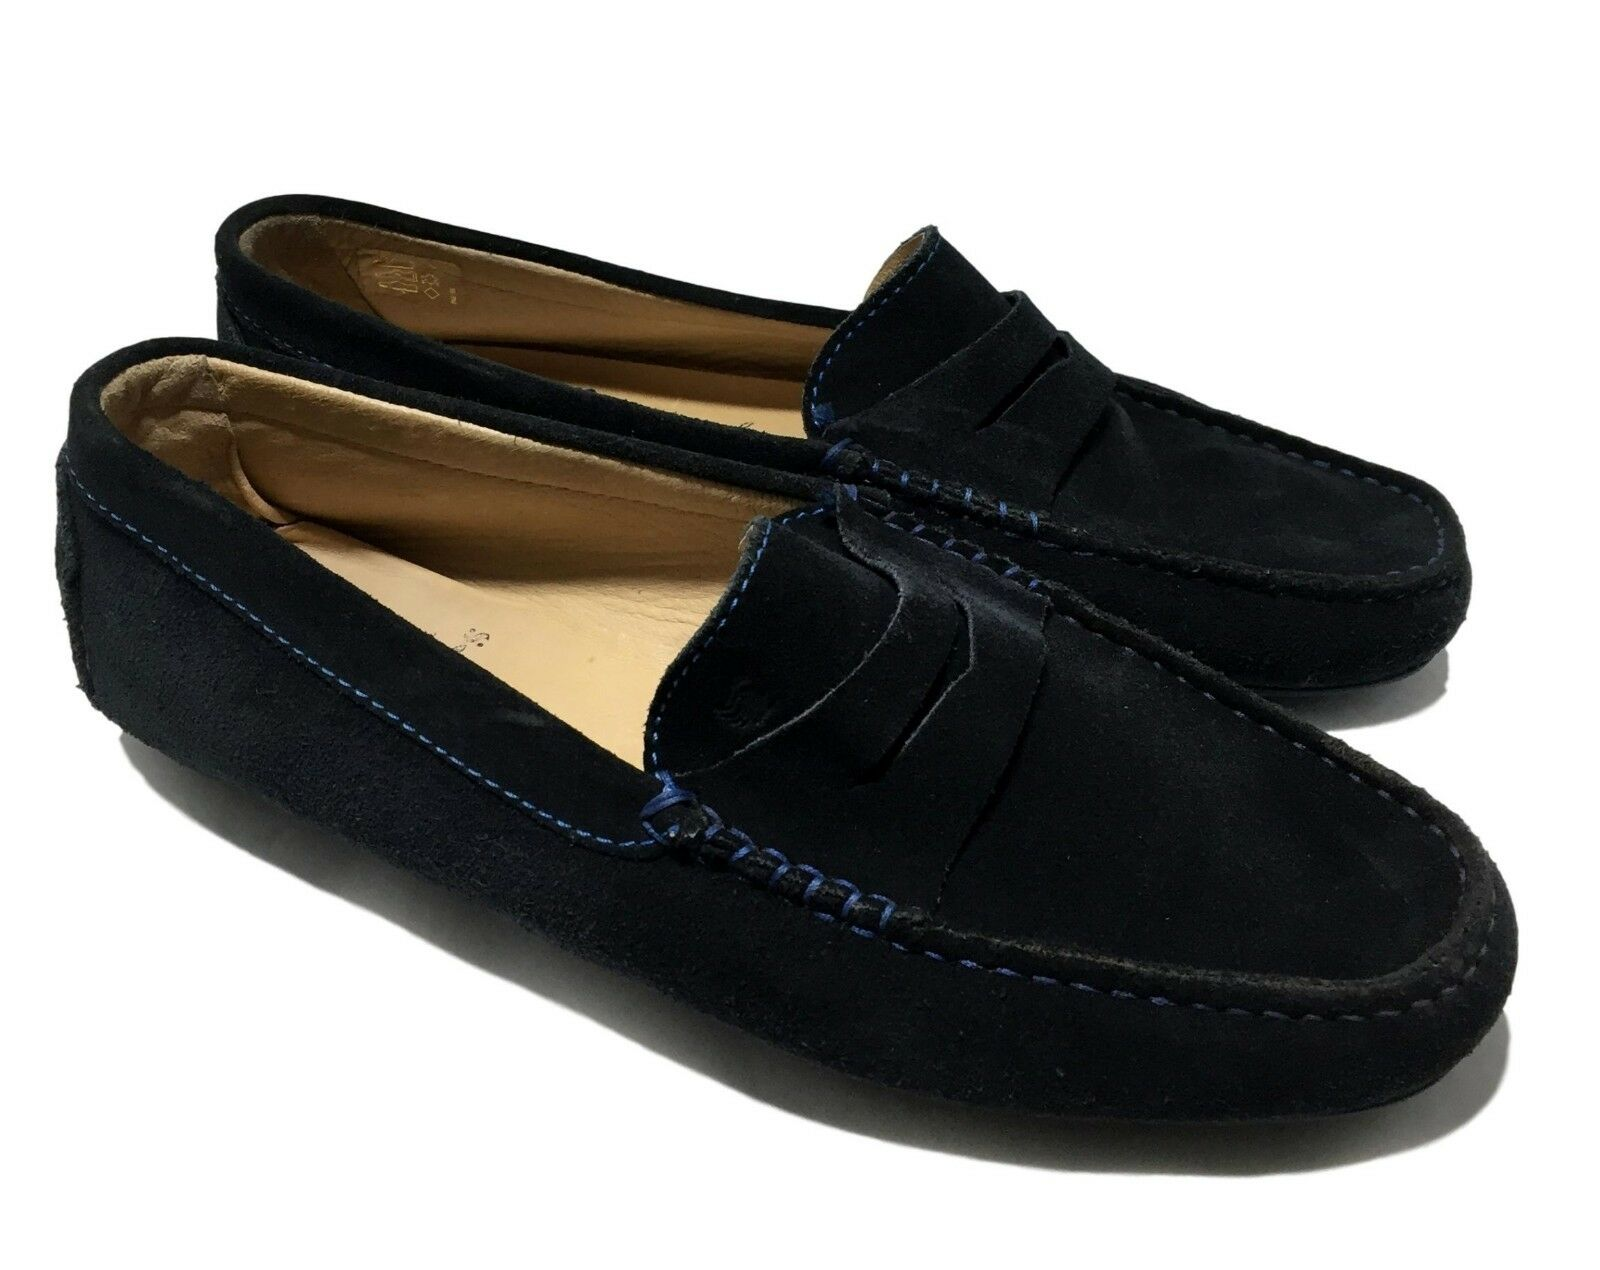 BOBBIES PARIS MEN'S NAVY SUEDE LOAFERS, 42, 165